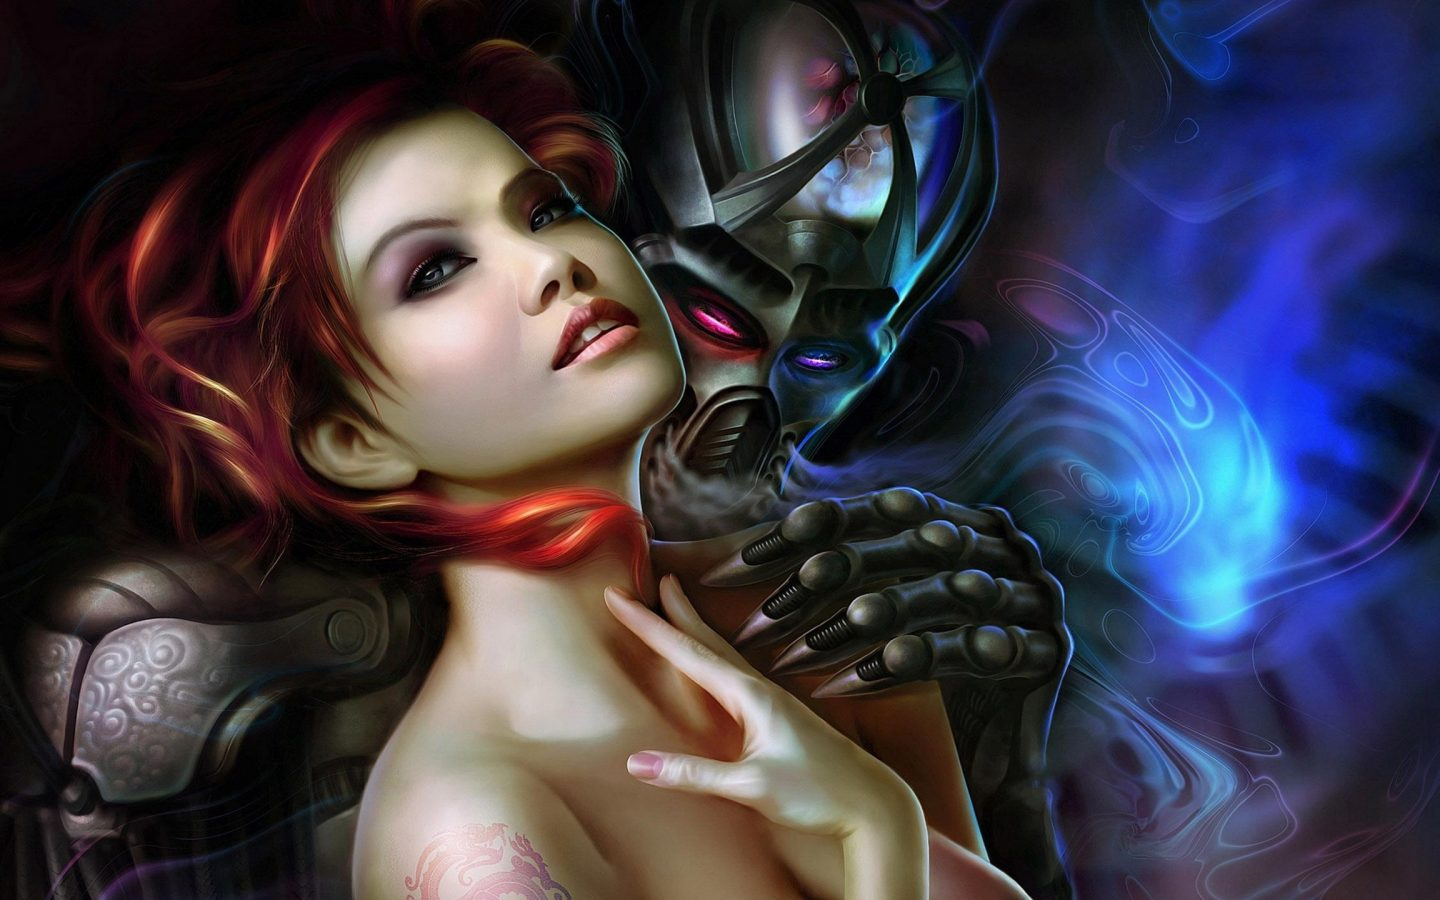 Beautiful-Girl-with-red-hair-and-robot-boy-Fantasy-art-Wallpaper-for-mobile-phones-Tablet-and-PC-3840x2160-1440x900